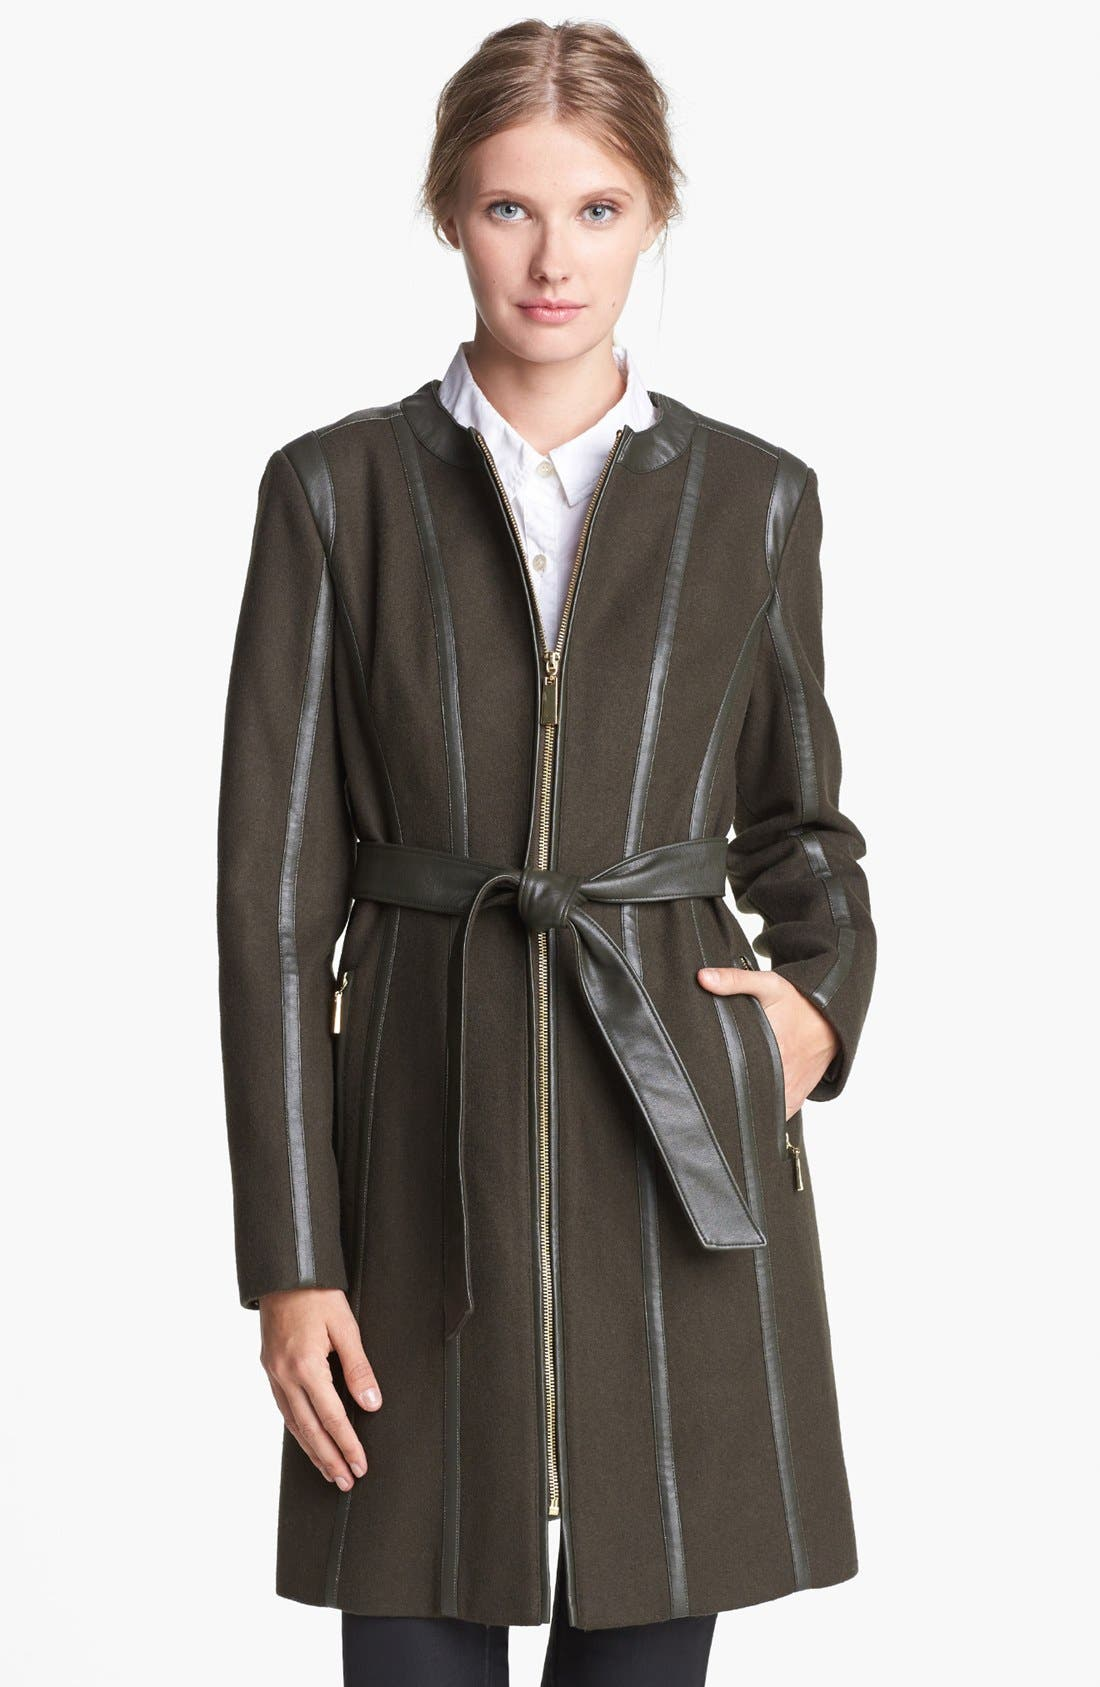 Alternate Image 1 Selected - Vince Camuto Leather Trim Belted Wool Blend Coat